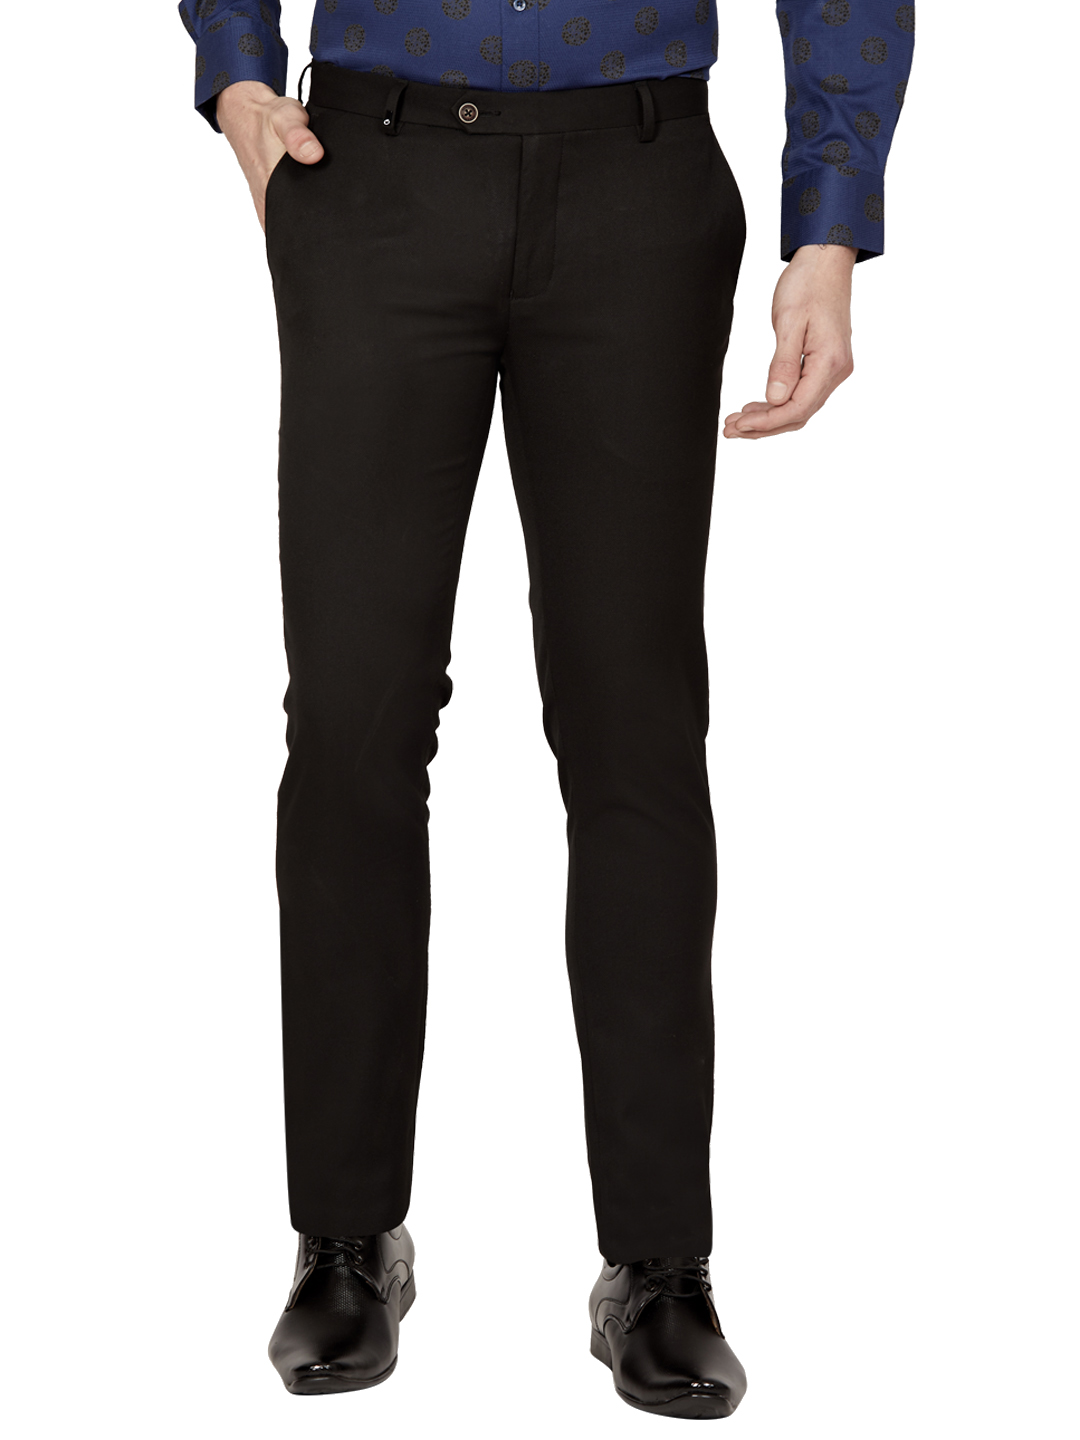 OXEMBERG | Oxemberg Men's Poly Viscose Anti Viral Slim Fit Formal Trousers